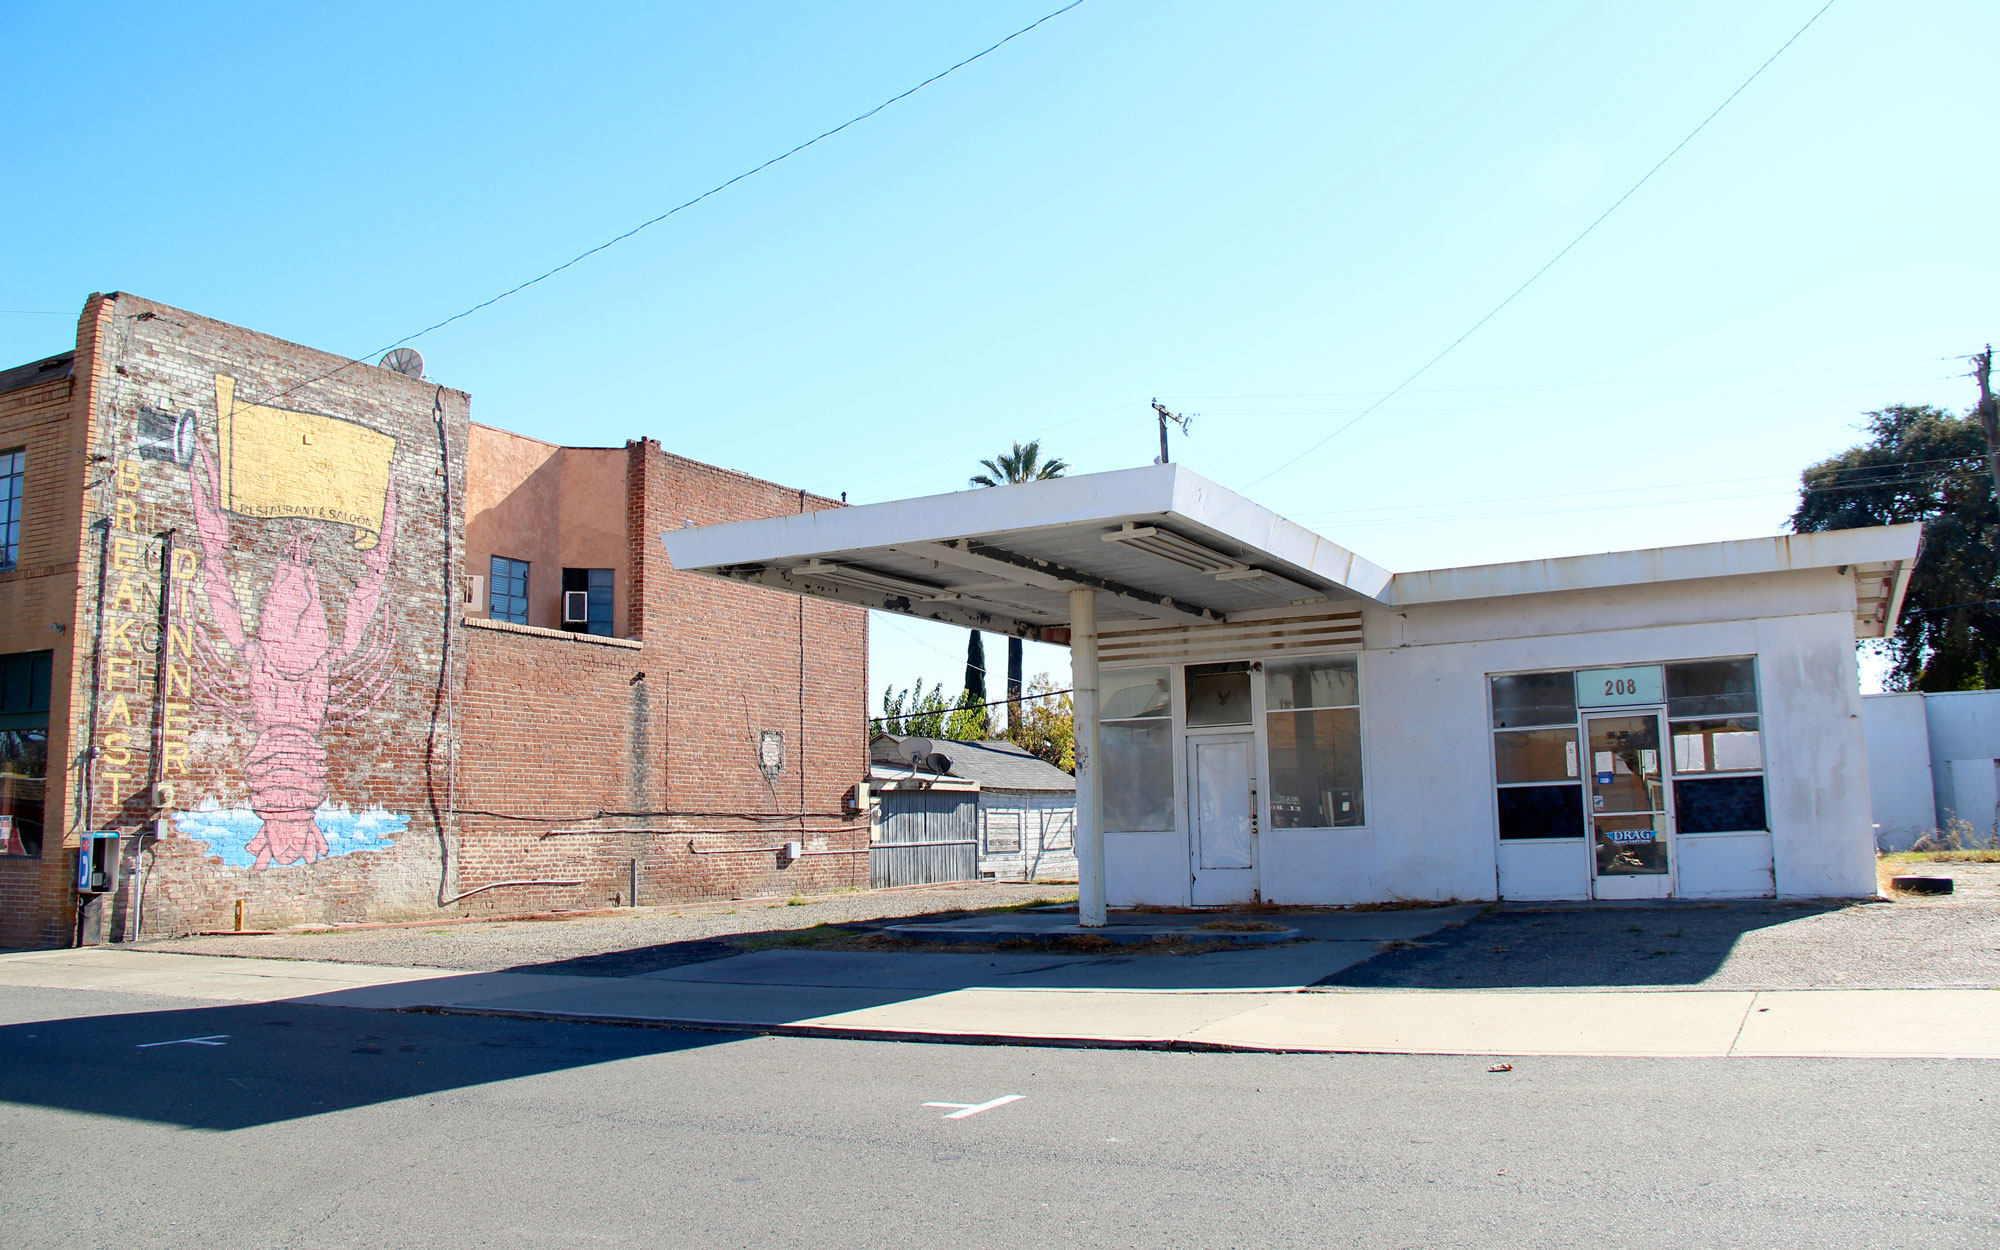 See The Ghost Towns of the Sacramento Delta Before They're Gone